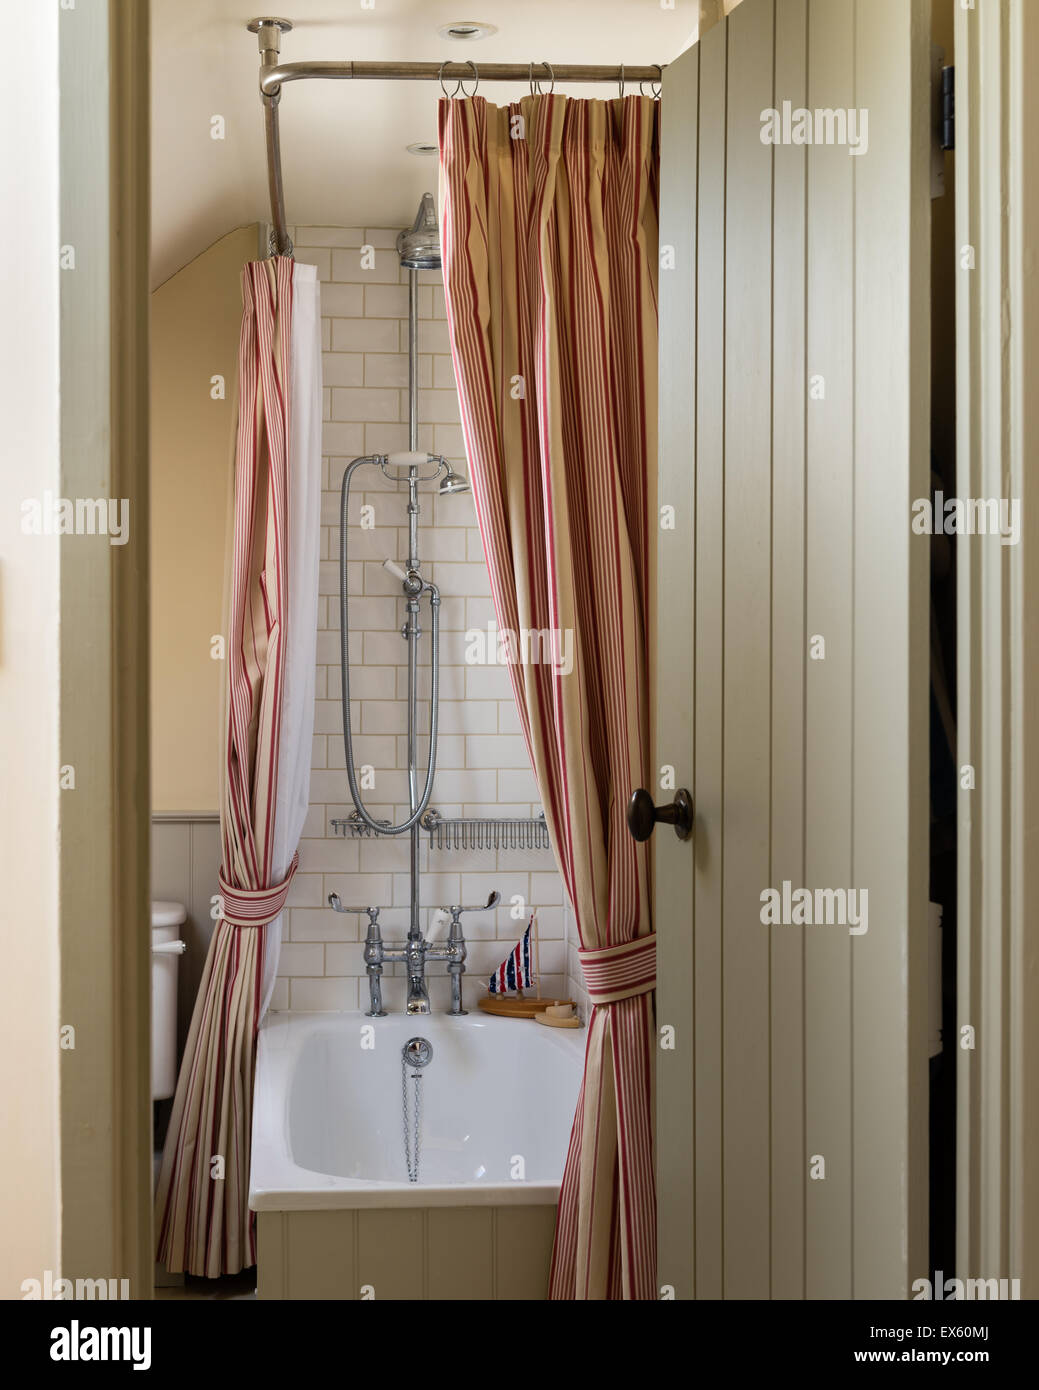 View through open door to bathroom. The shower curtain is made from Ian Mankin fabric & Shower Curtain Stock Photos \u0026 Shower Curtain Stock Images - Alamy